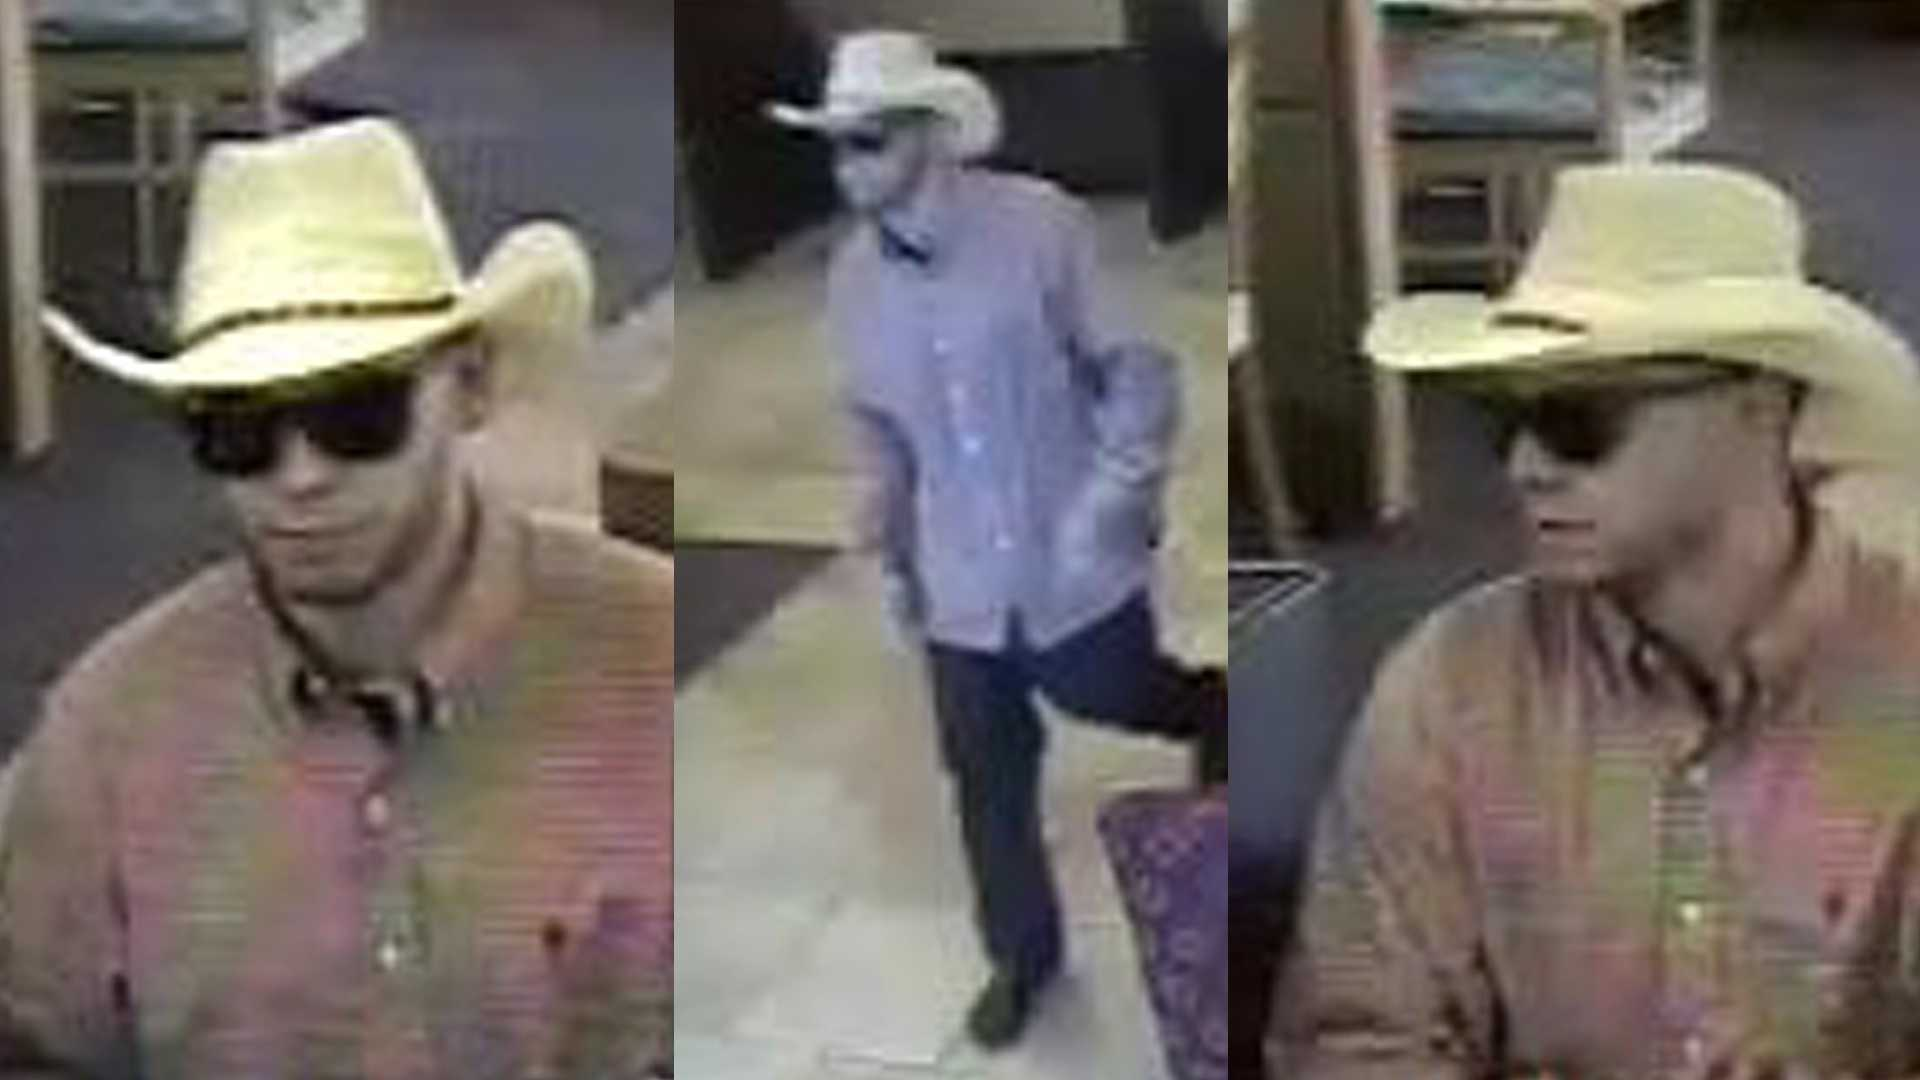 Roseville police are looking for a man who robbed a Wells Fargo Bank while wearing a cowboy hat.